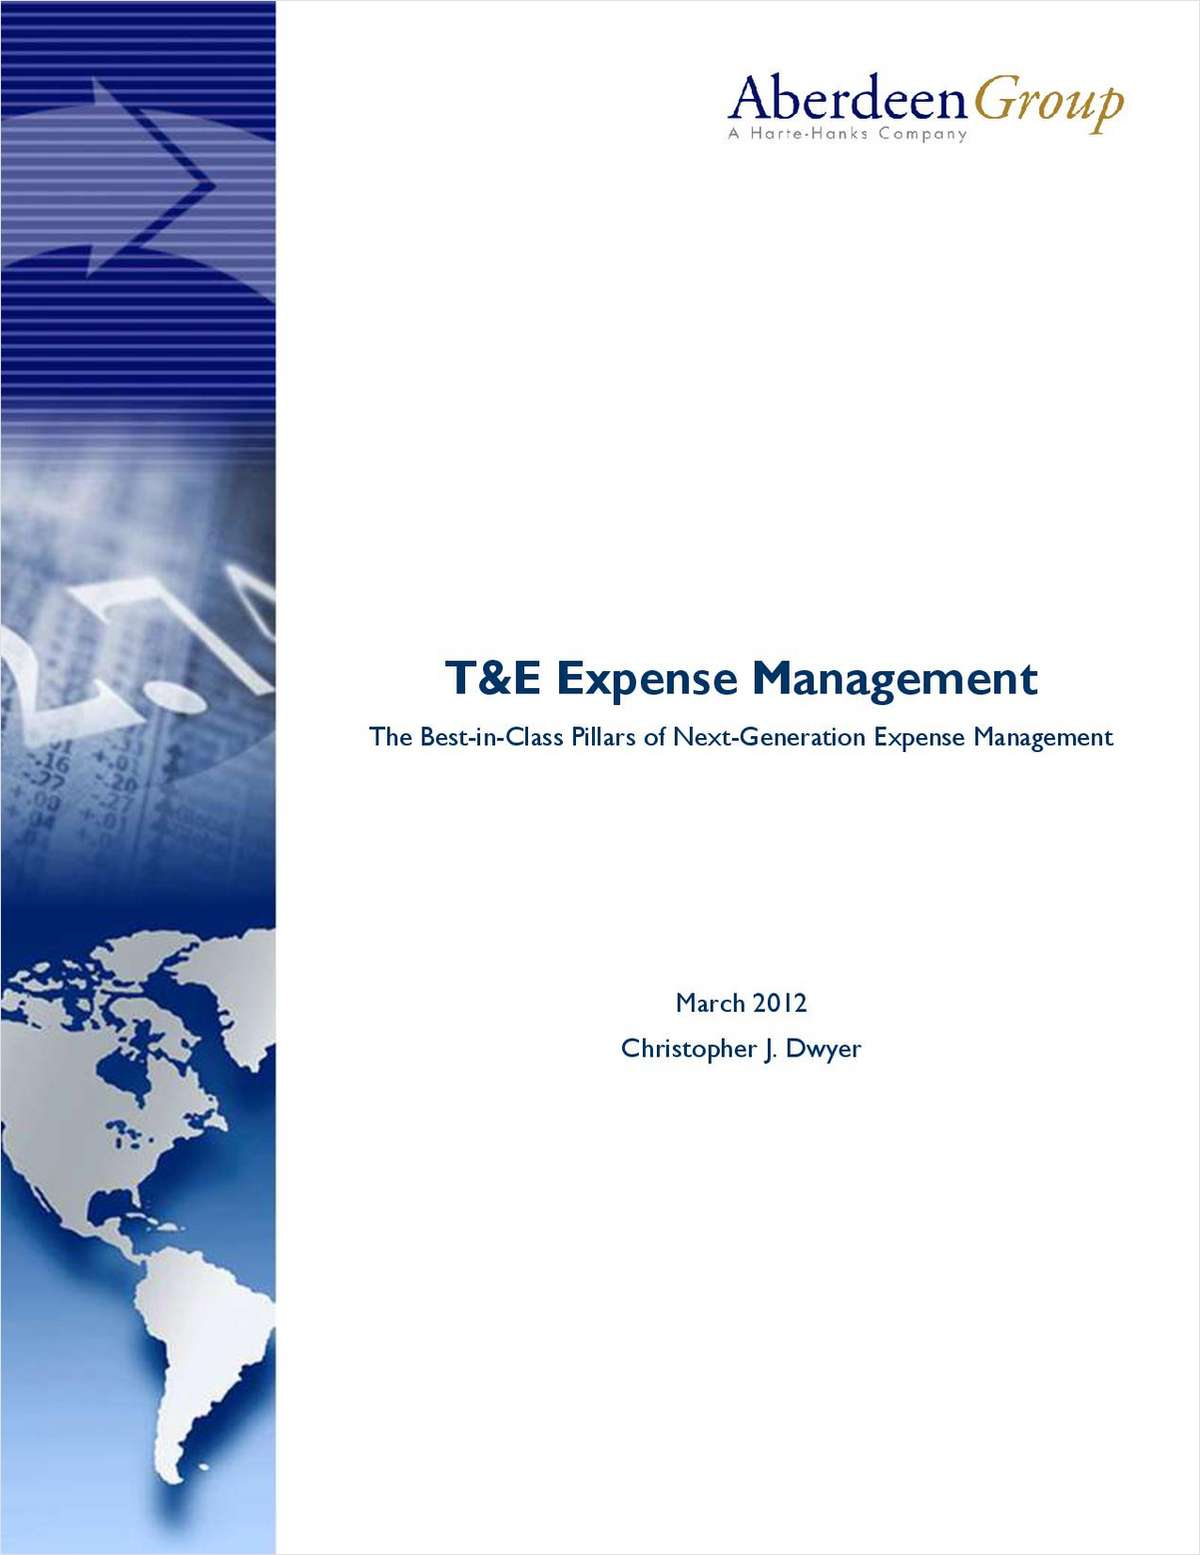 T&E Expense Management